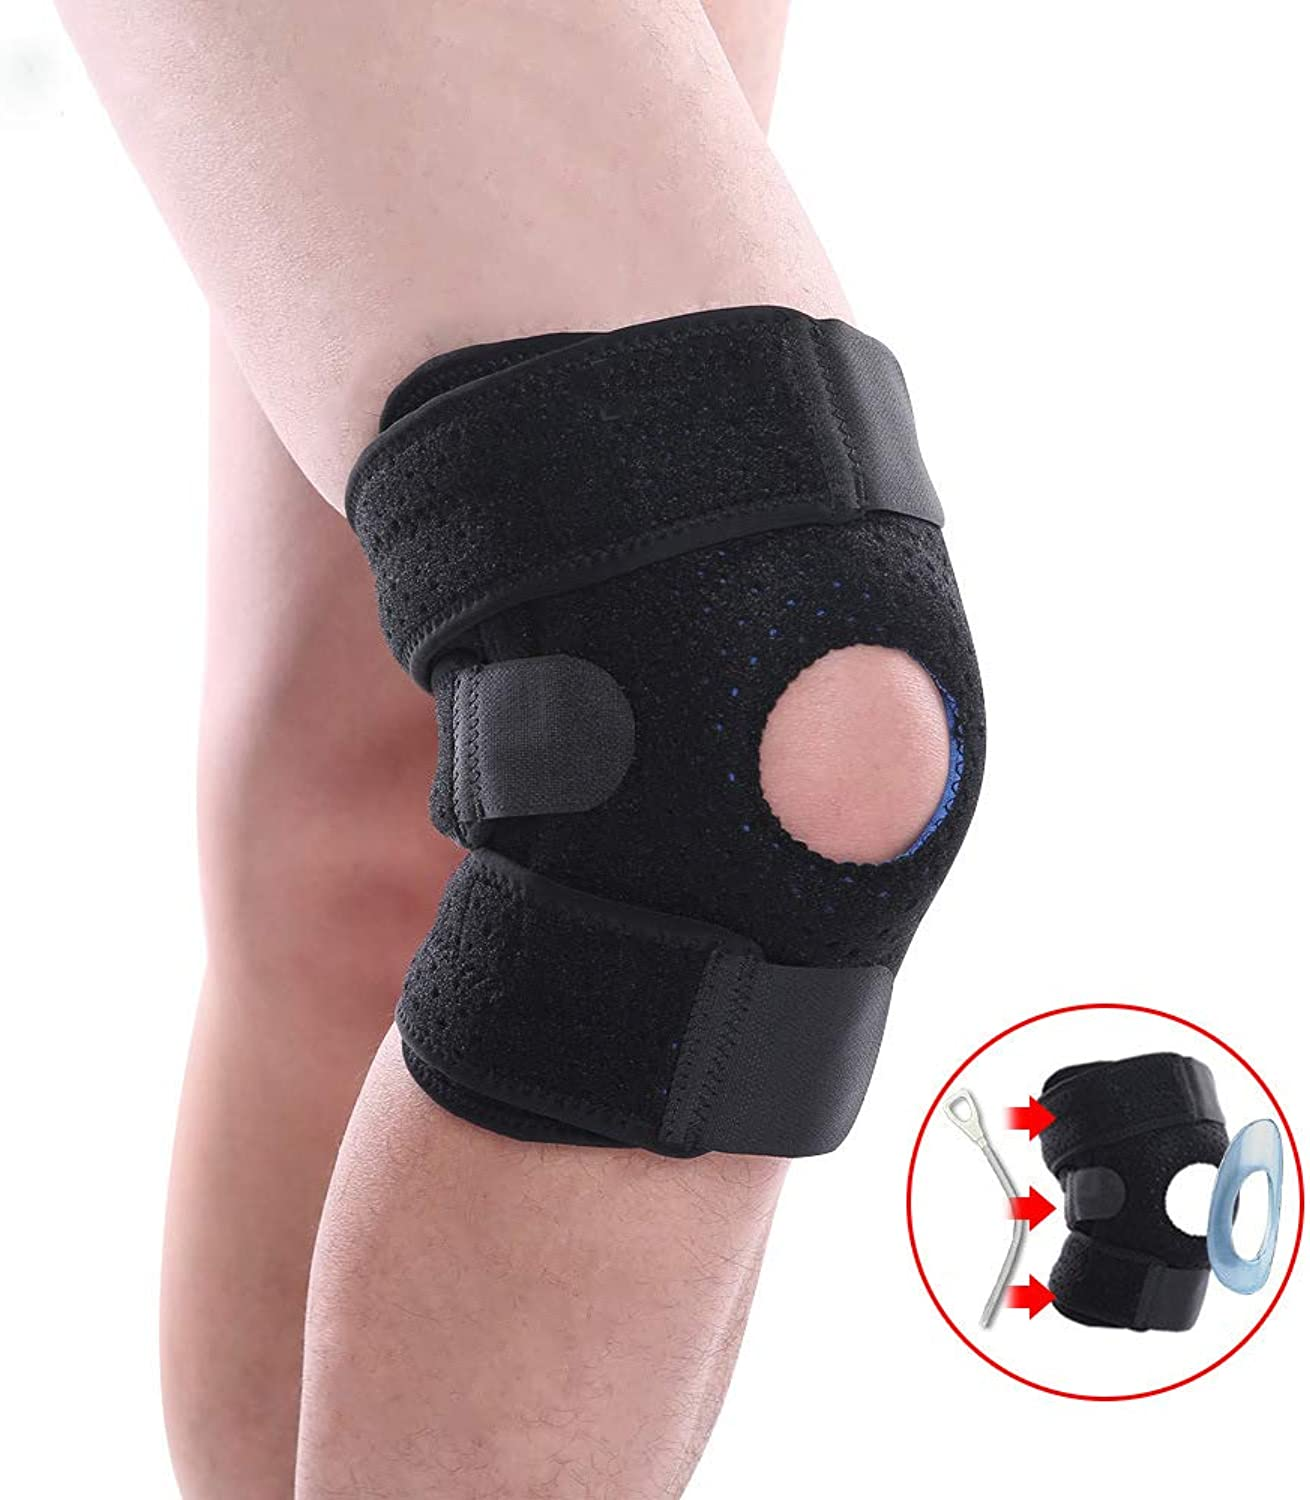 Knee Brace Support with Adjustable Veclro  Best for Meniscus Tear, Arthritis, ACL, MCL, Sports, Running, Basketball for Men & Women